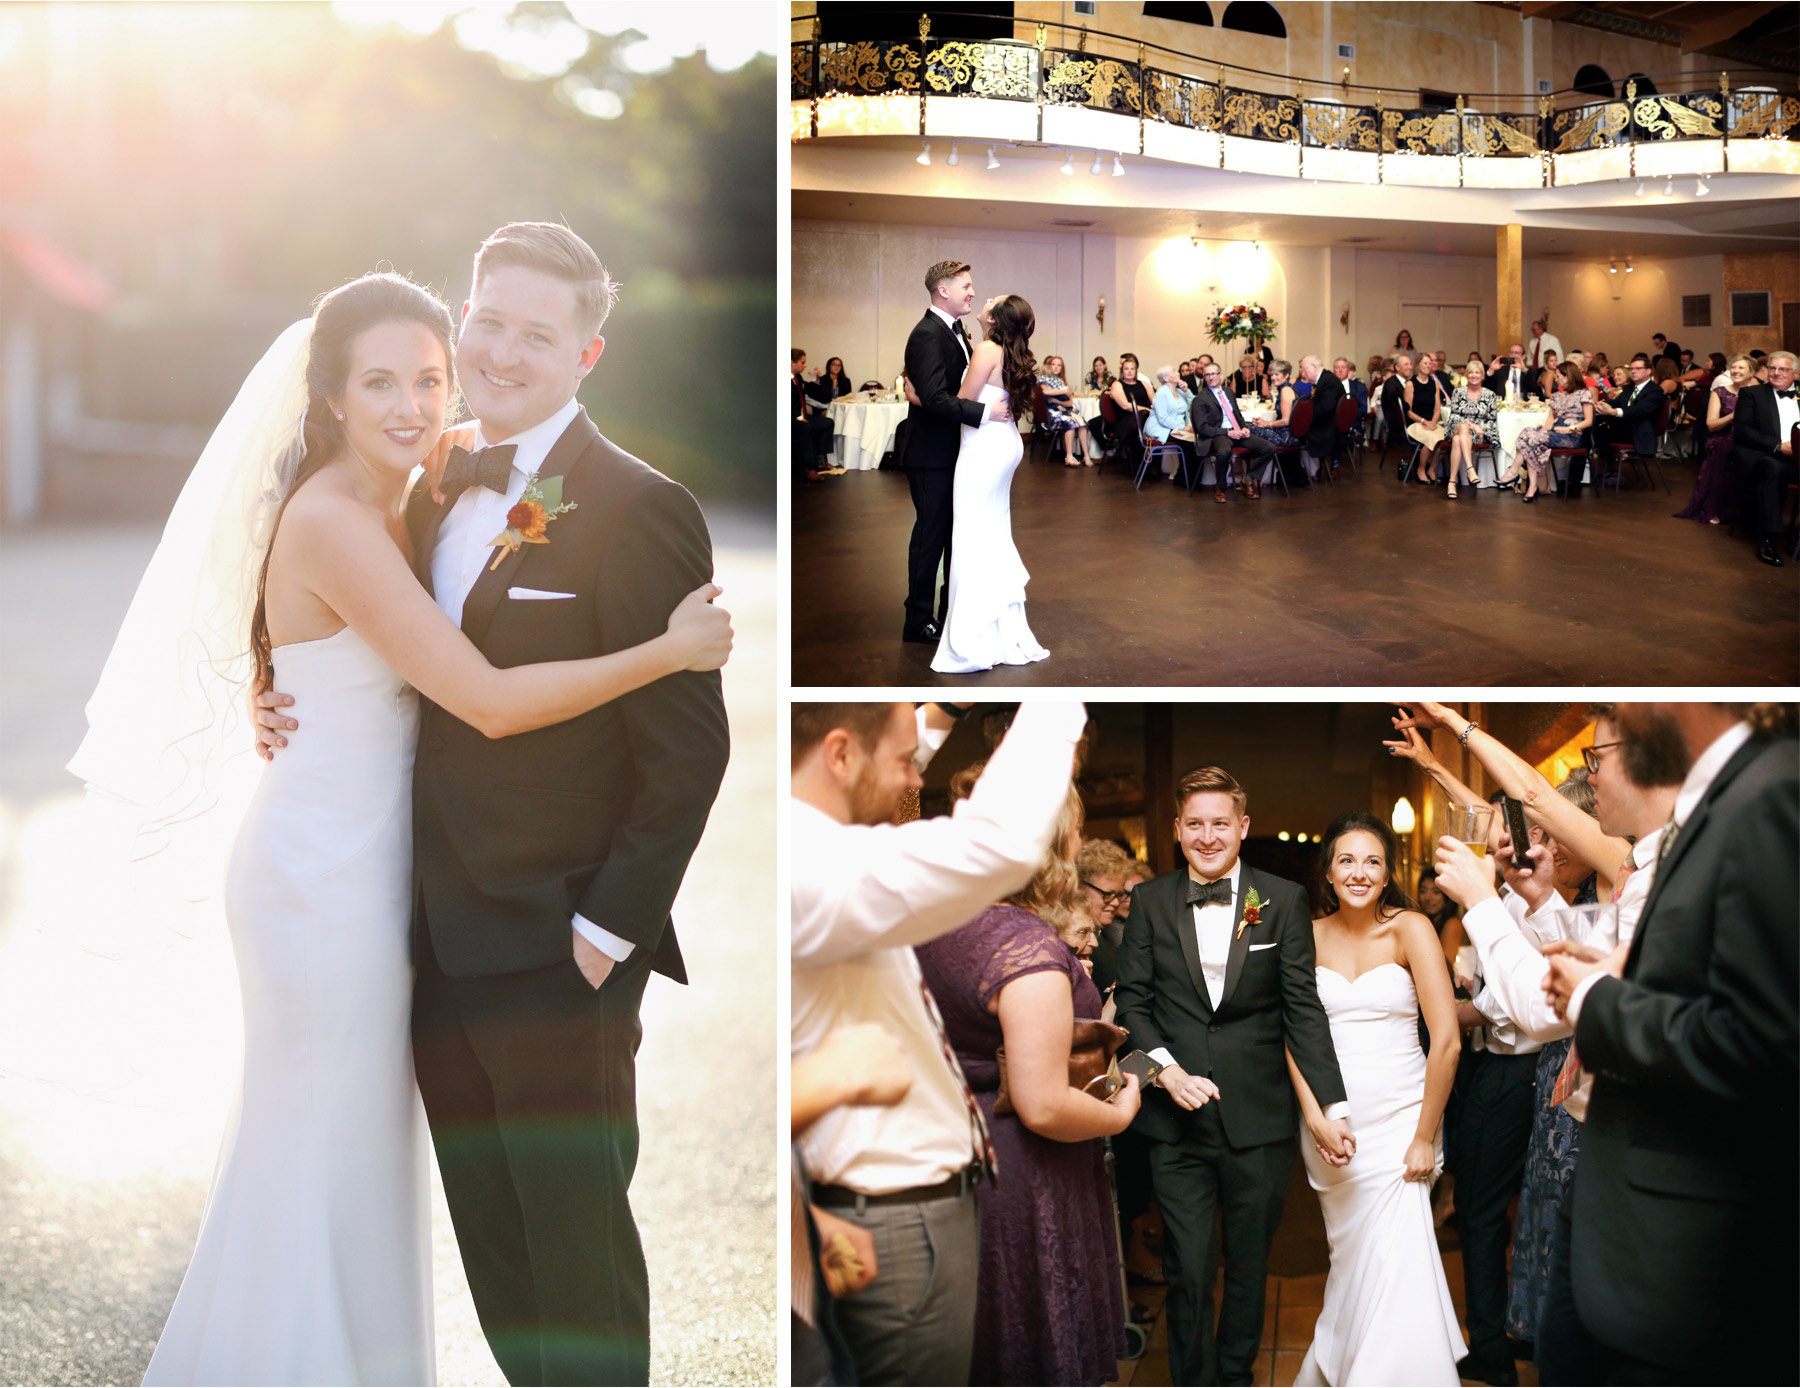 19-Kansas-City-Missouri-Destination-Wedding-Photography-by-Vick-Photography-Madrid-Theatre-Reception-First-Dance-Carly-and-Kenny.jpg